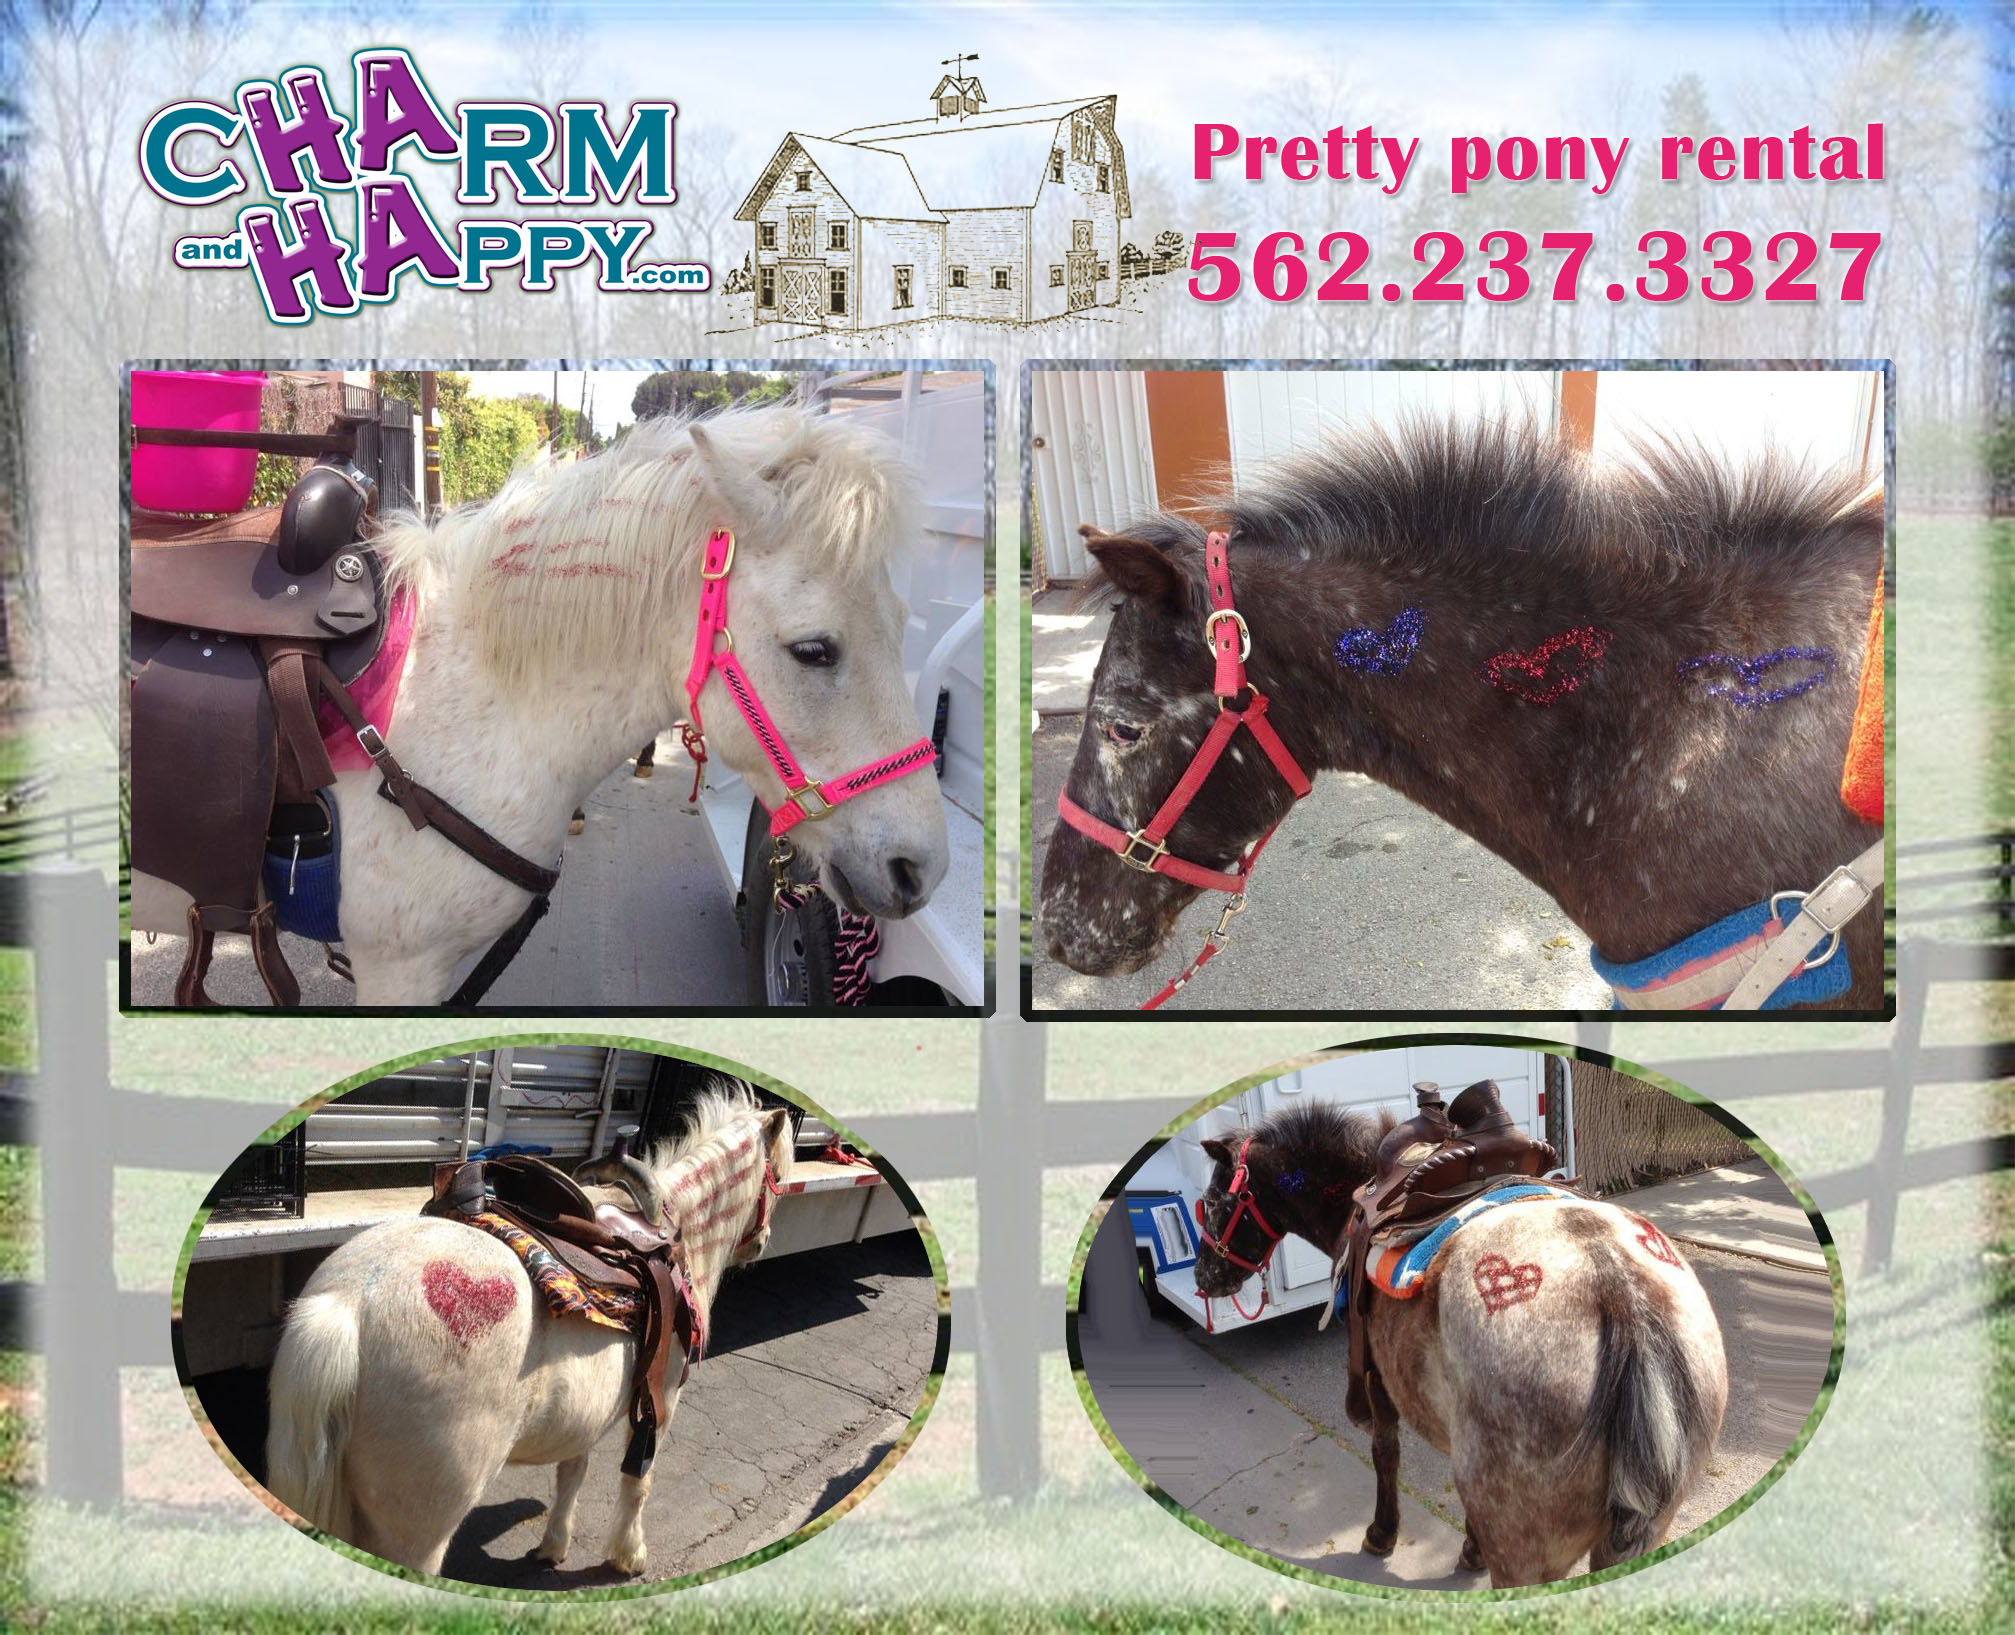 CharmandHappy com pony ride ponies petting zoo farm animals